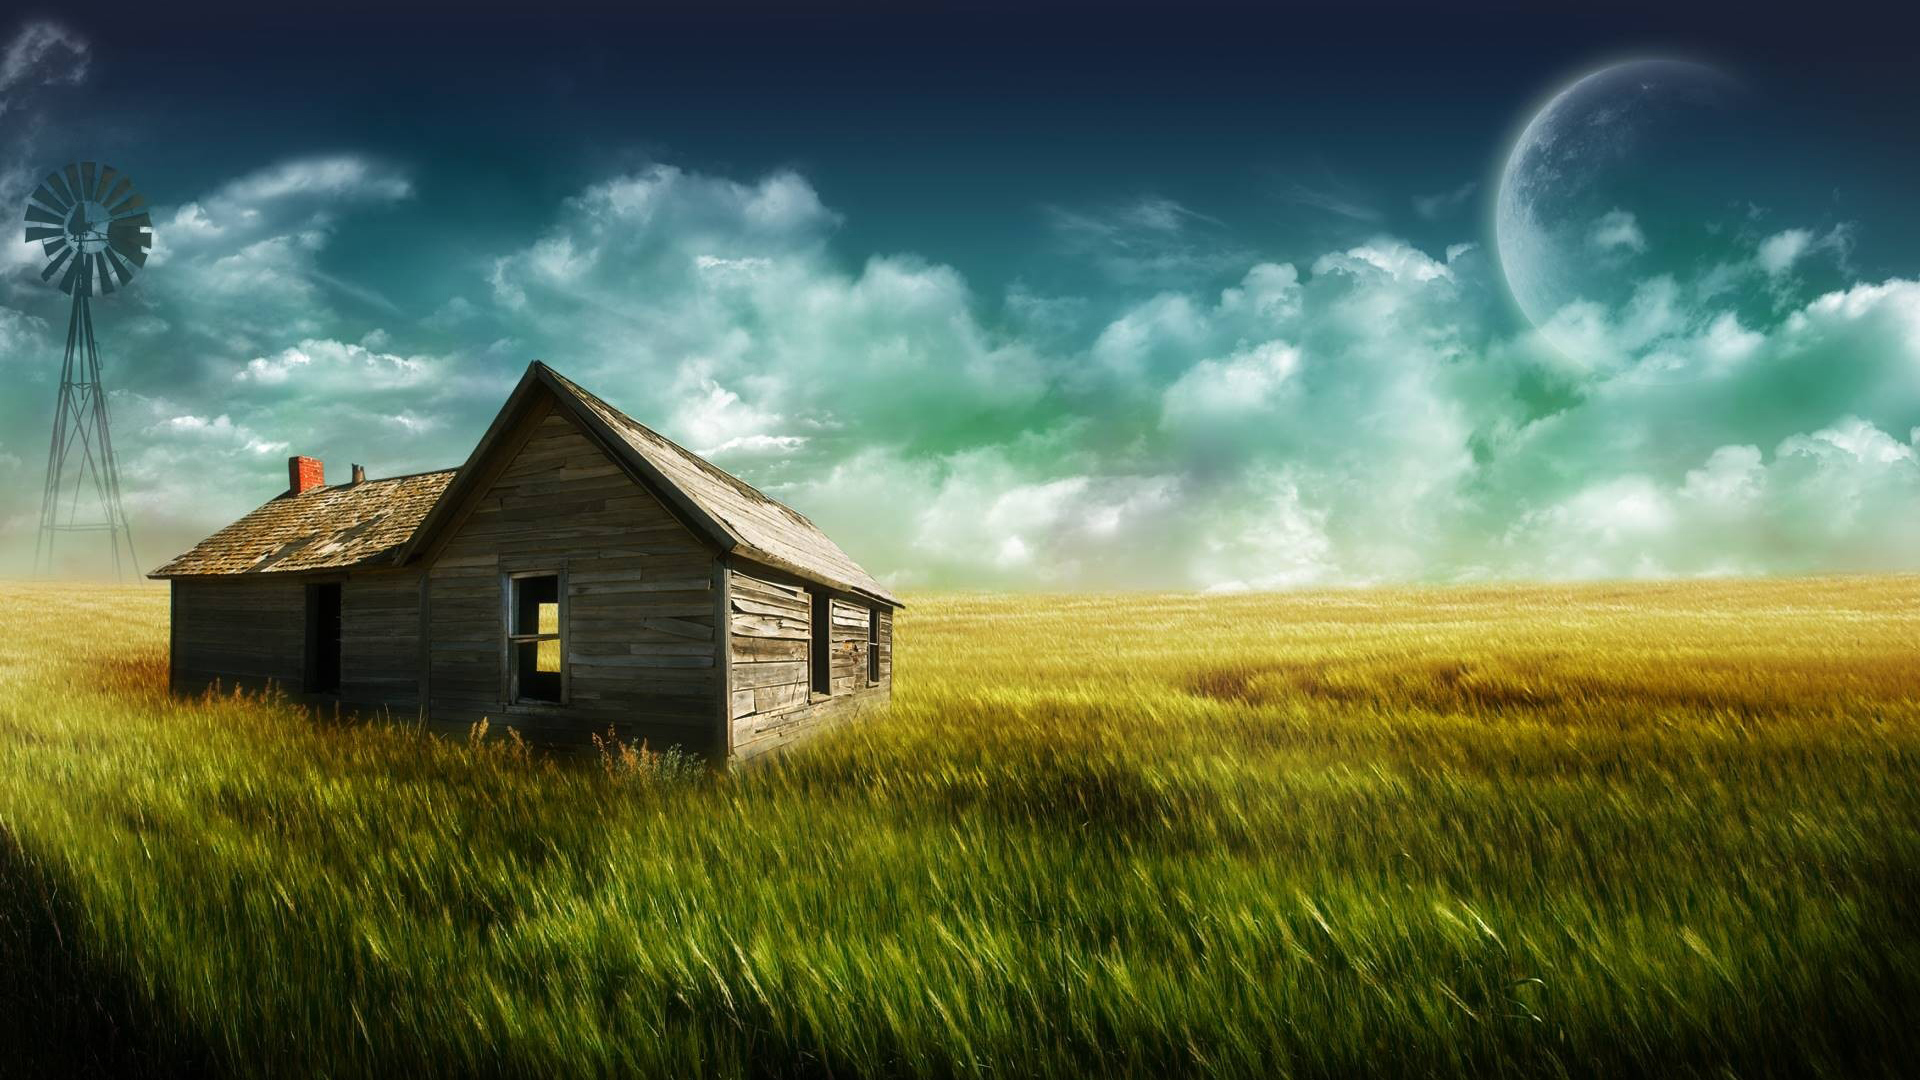 Desktop Huts In The Field Landscape Wallpaper and make this wallpaper 573